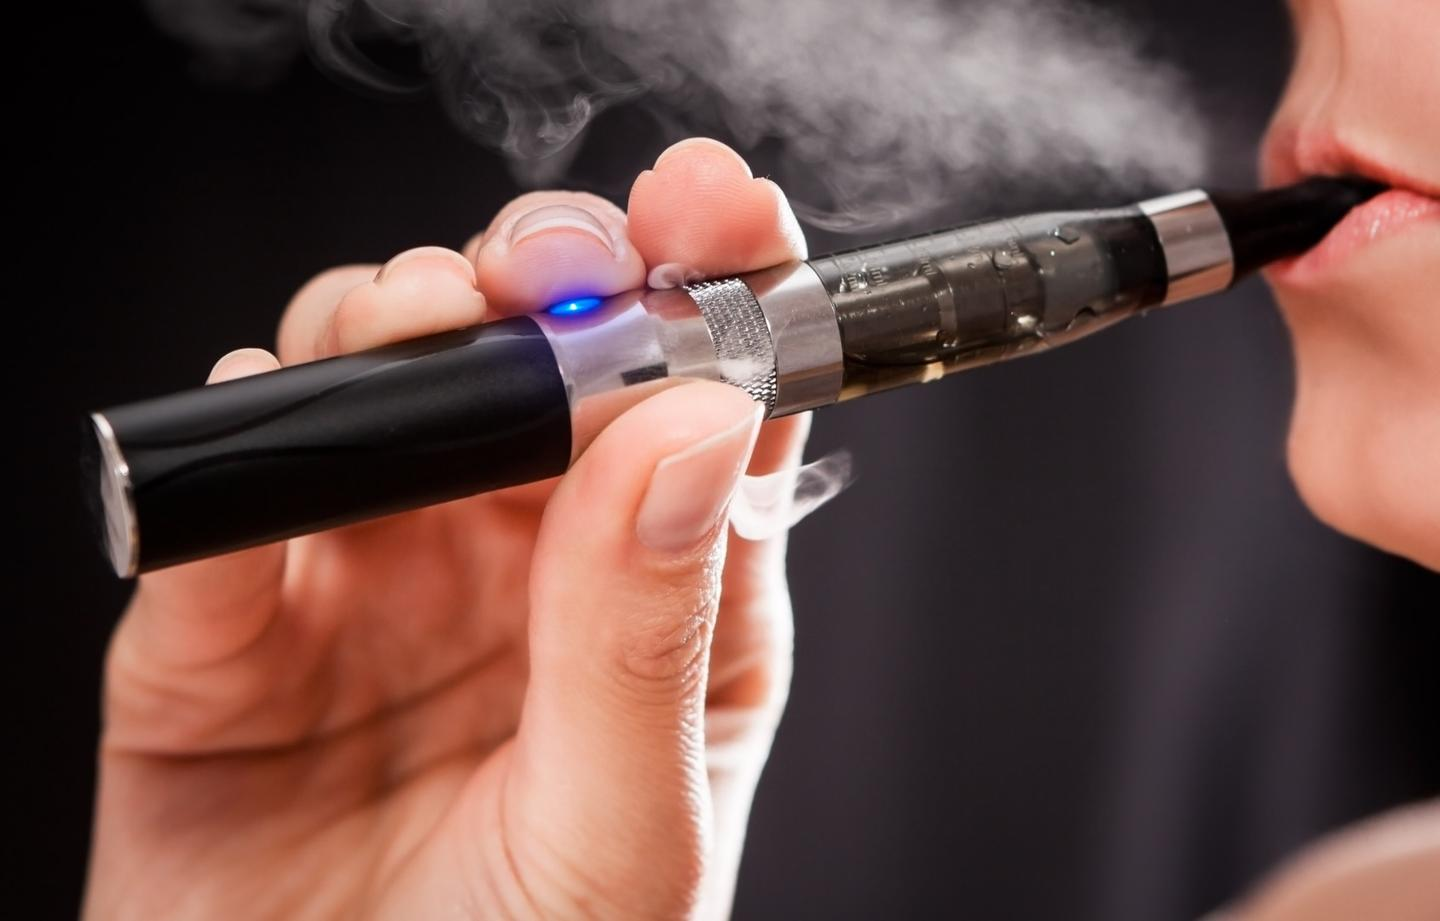 The San Francisco ban is targeted at all e-cigarette products that have not received FDA approval... which in effect, is all e-cigarette products